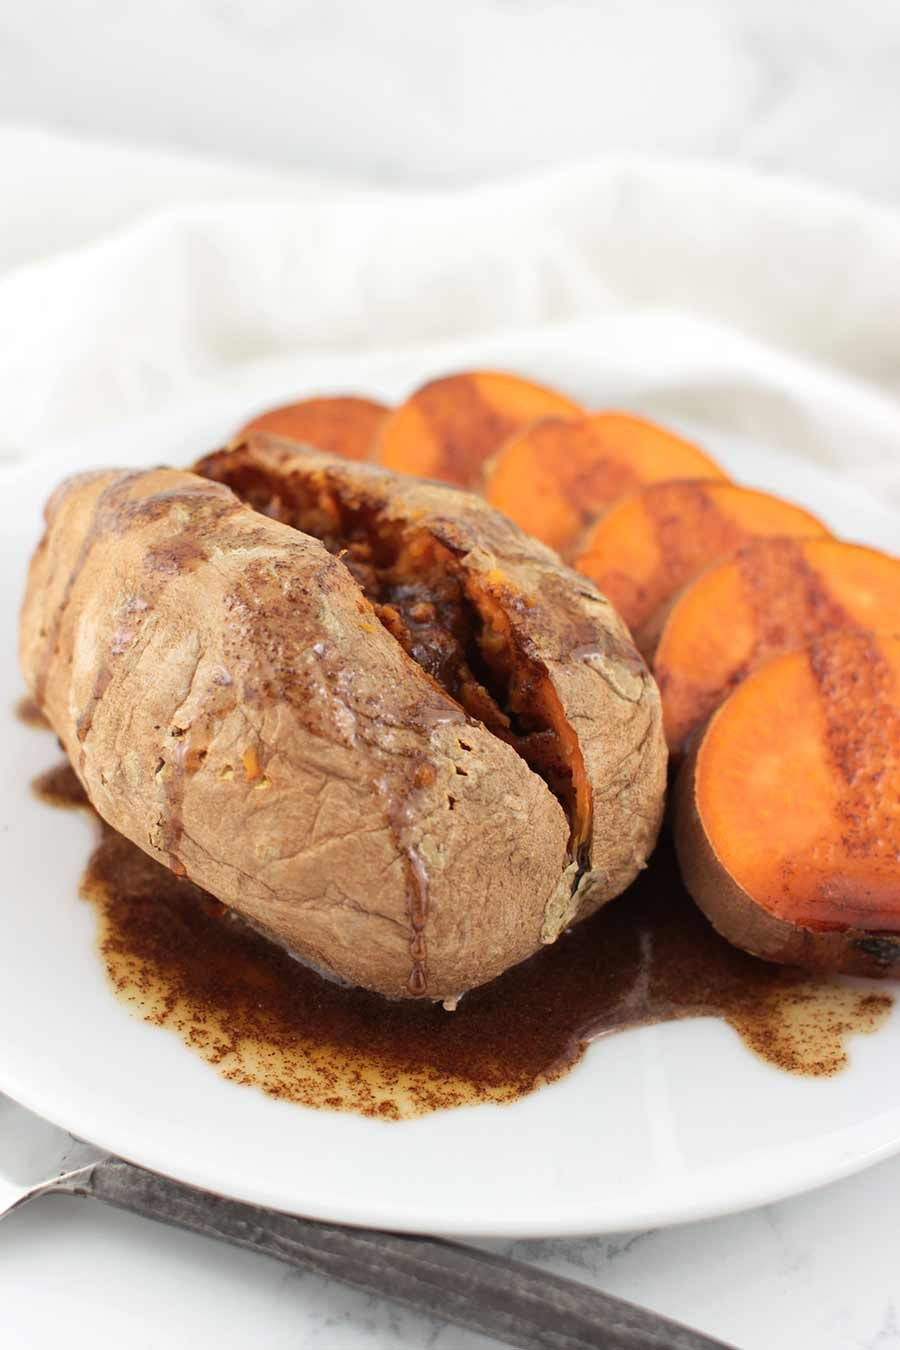 Maple-Cinnamon Baked Sweet Potatoes recipe from acleanplate.com #aip #paleo #autoimmuneprotocol